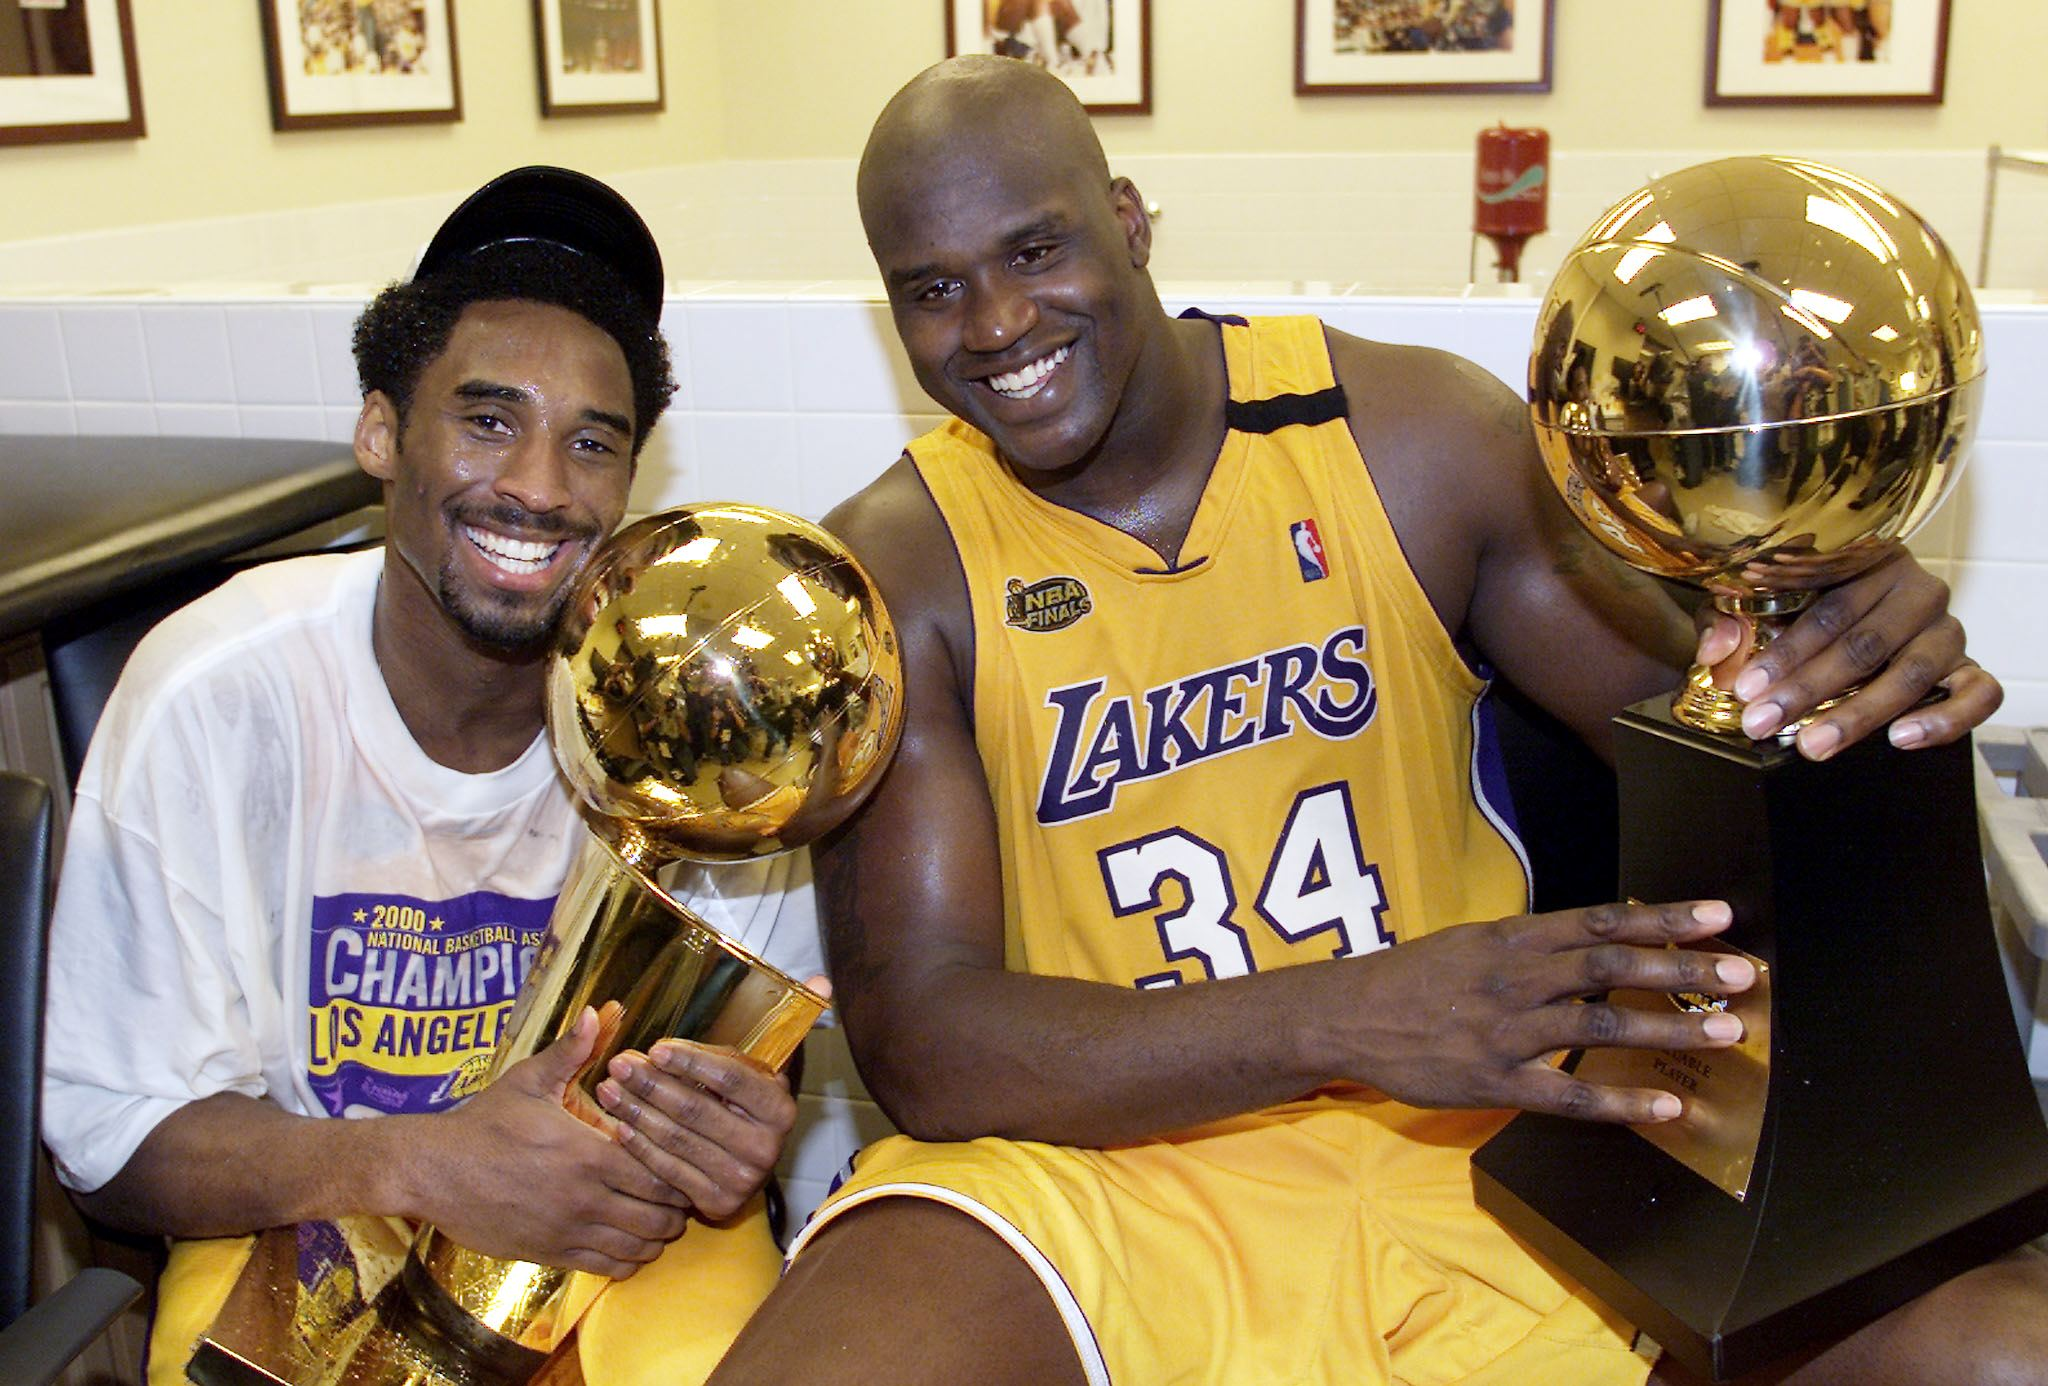 Shaquille O'Neal gets emotional when speaking about Kobe Bryant's passing. Shaq won three championships alongside Kobe while playing for the Lakers.